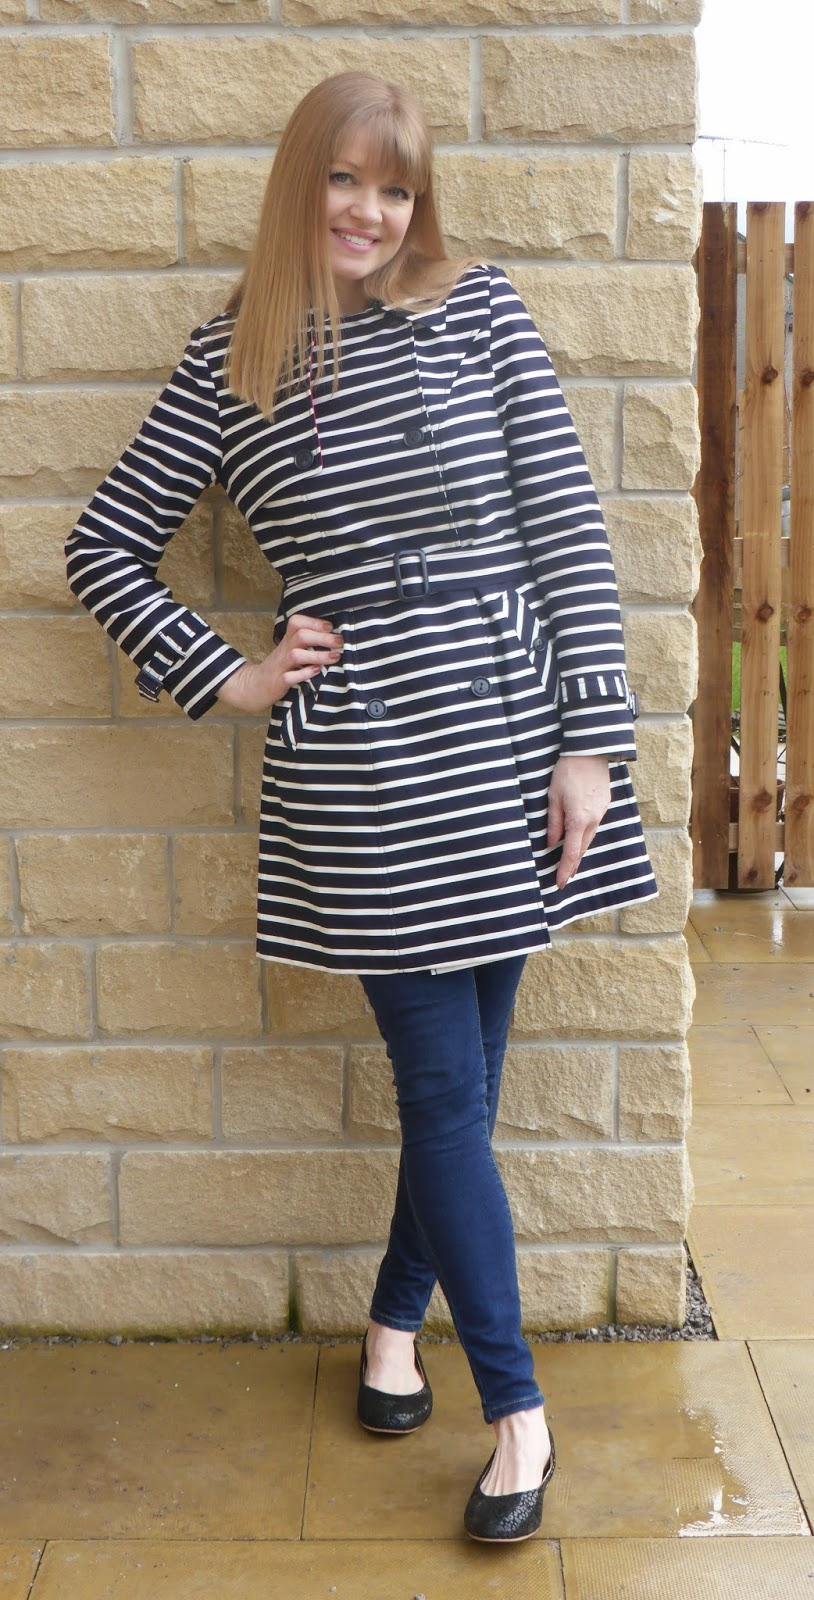 Over 40s blogger What Lizzy Loves wearing navy and white striped trench coat from Laura Ashley with skinny jeans and black ballerina shoes